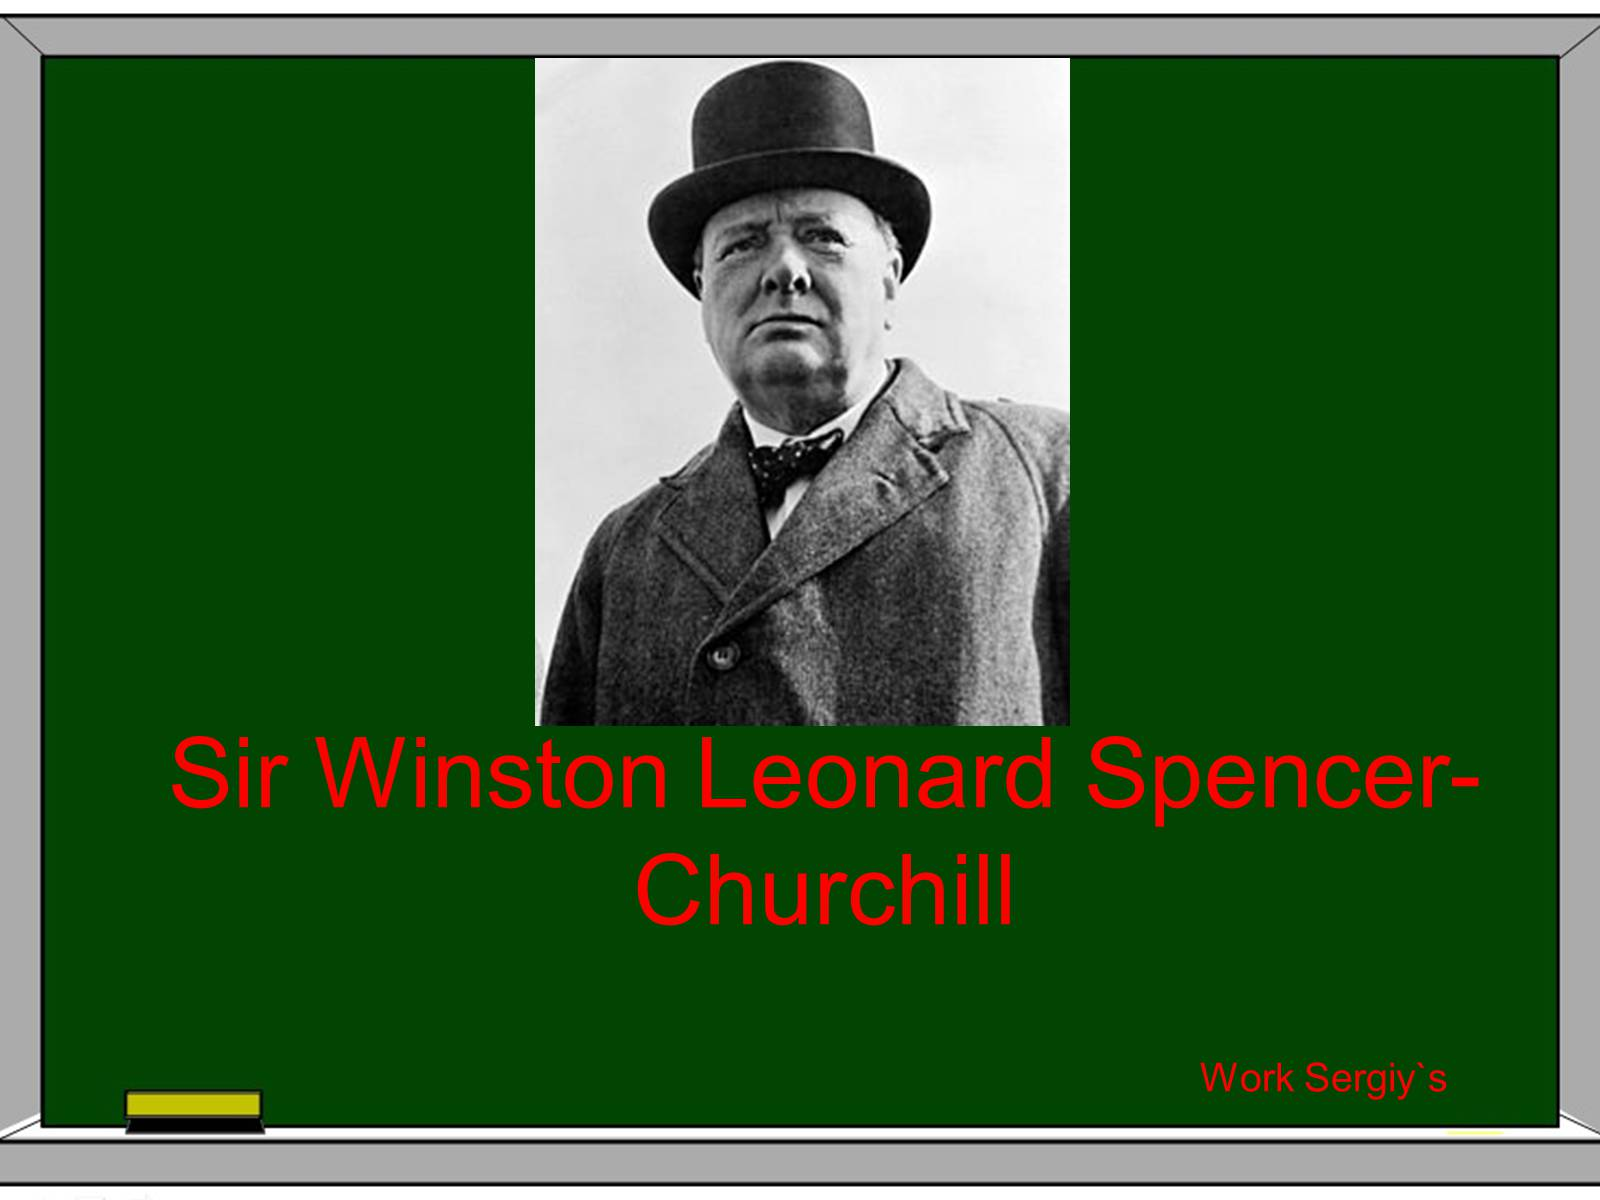 Презентація на тему «Sir Winston Leonard Spencer-Churchill»